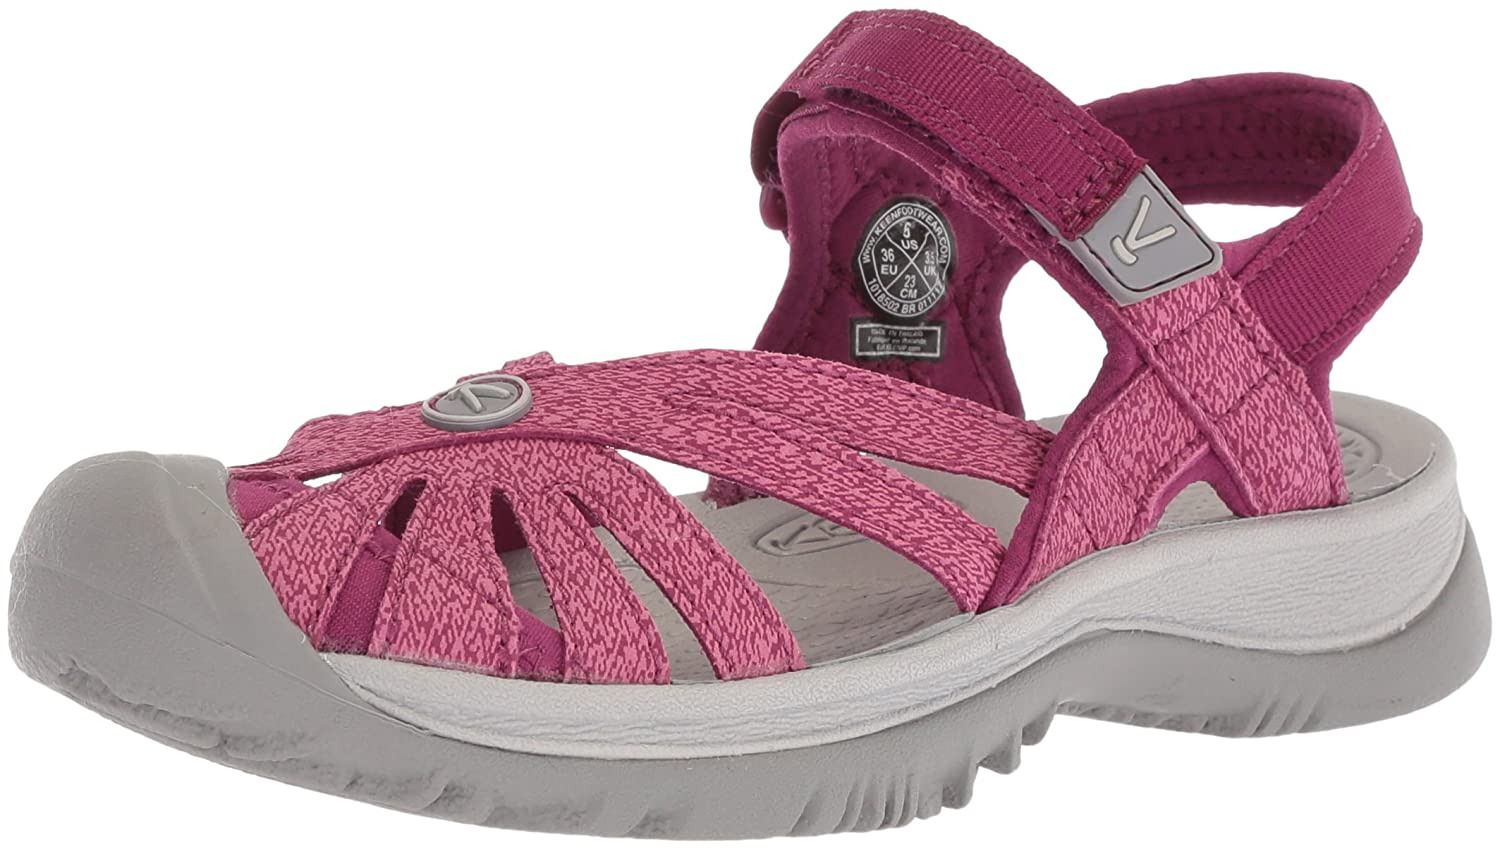 KEEN Women's Rose Sandal B071DFKS14 5 B(M) US|Boysenberry/Red Violet